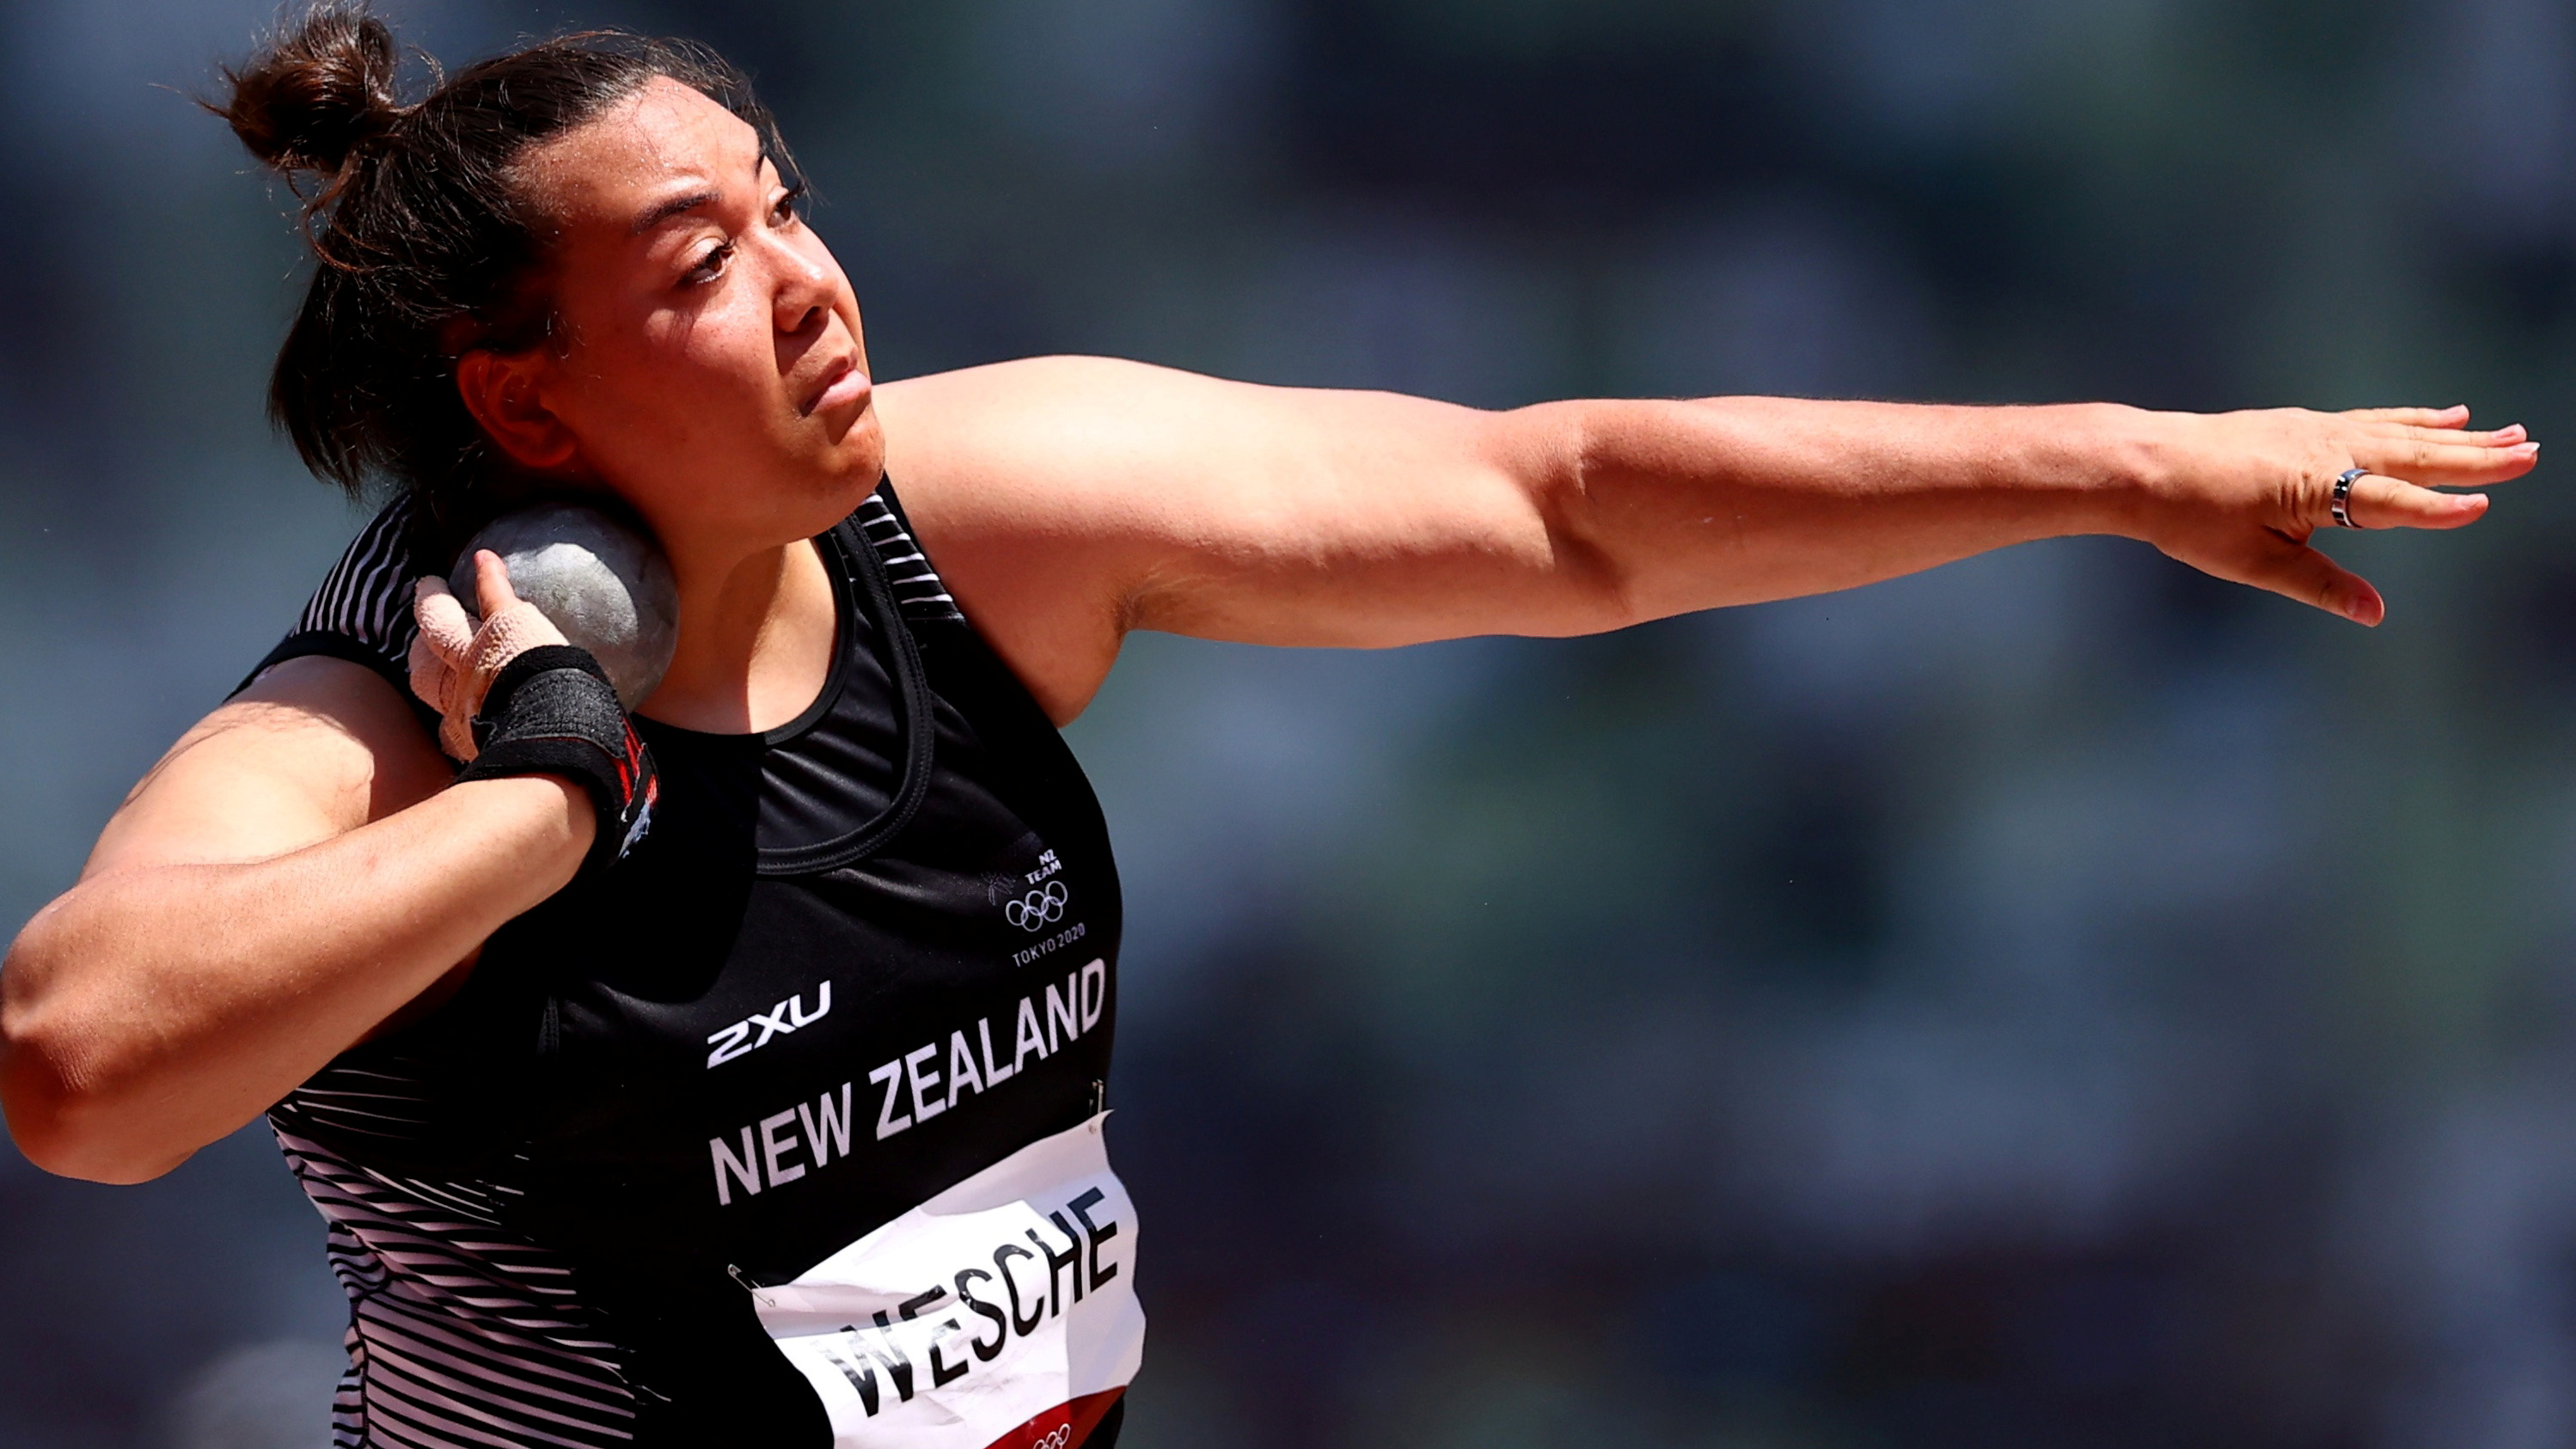 Maddison-Lee Wesche threw a personal best in the final. Photo: Reuters